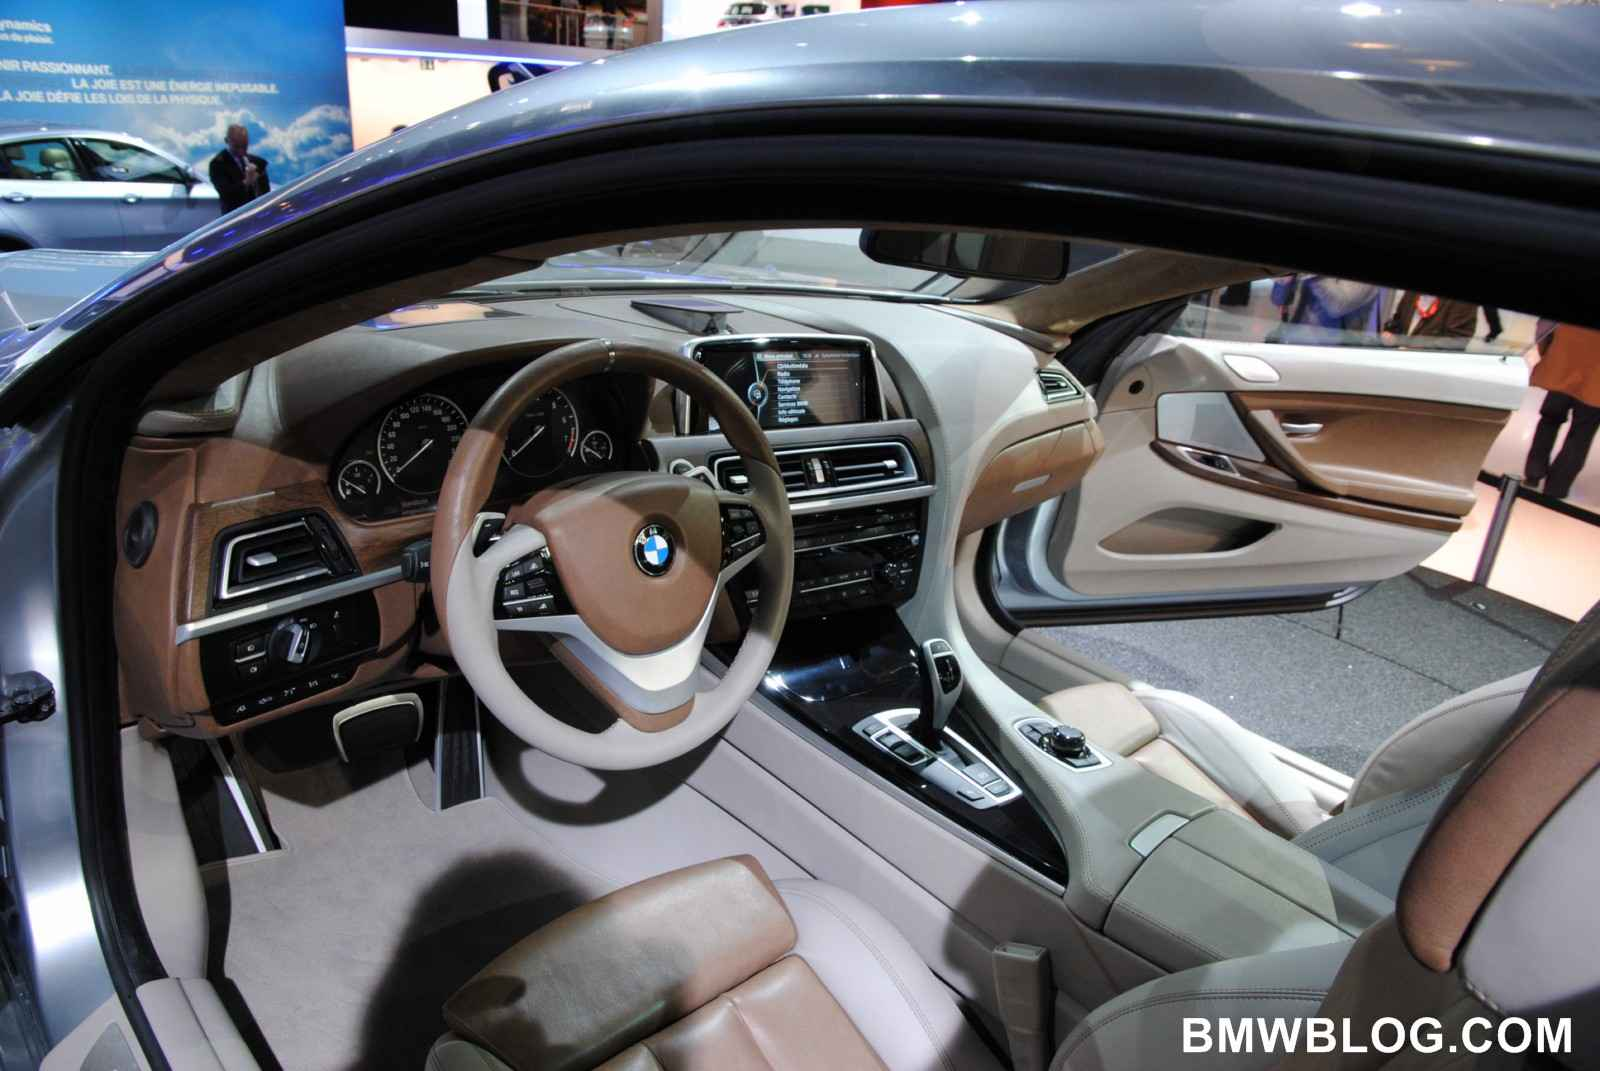 Rumor: 2012 BMW 6 Series Coupe to debut at Shanghai Auto Show